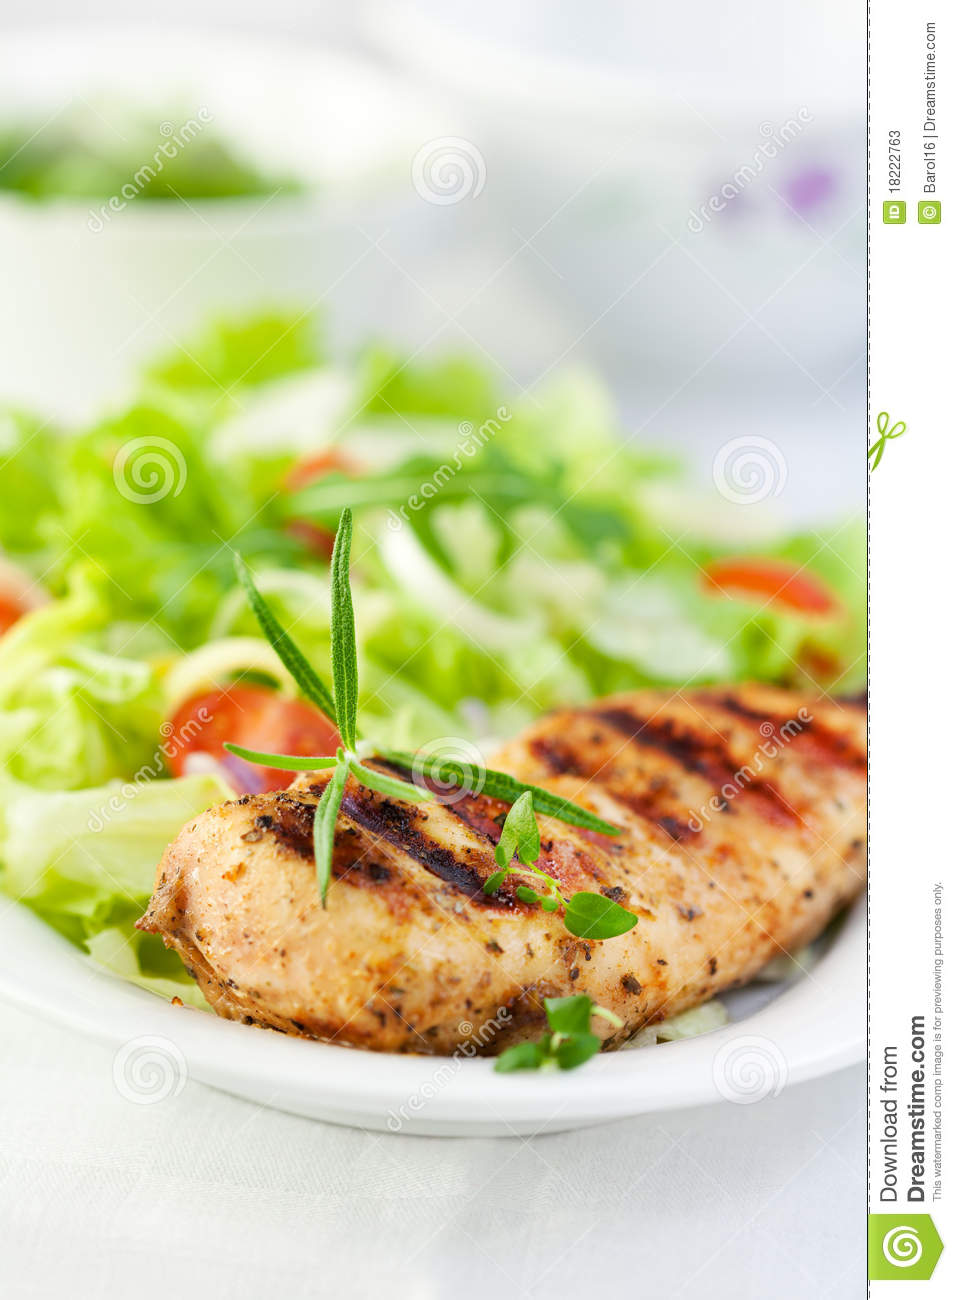 Grilled Chicken With Herbs And Salad Stock Photos - Image: 18222763